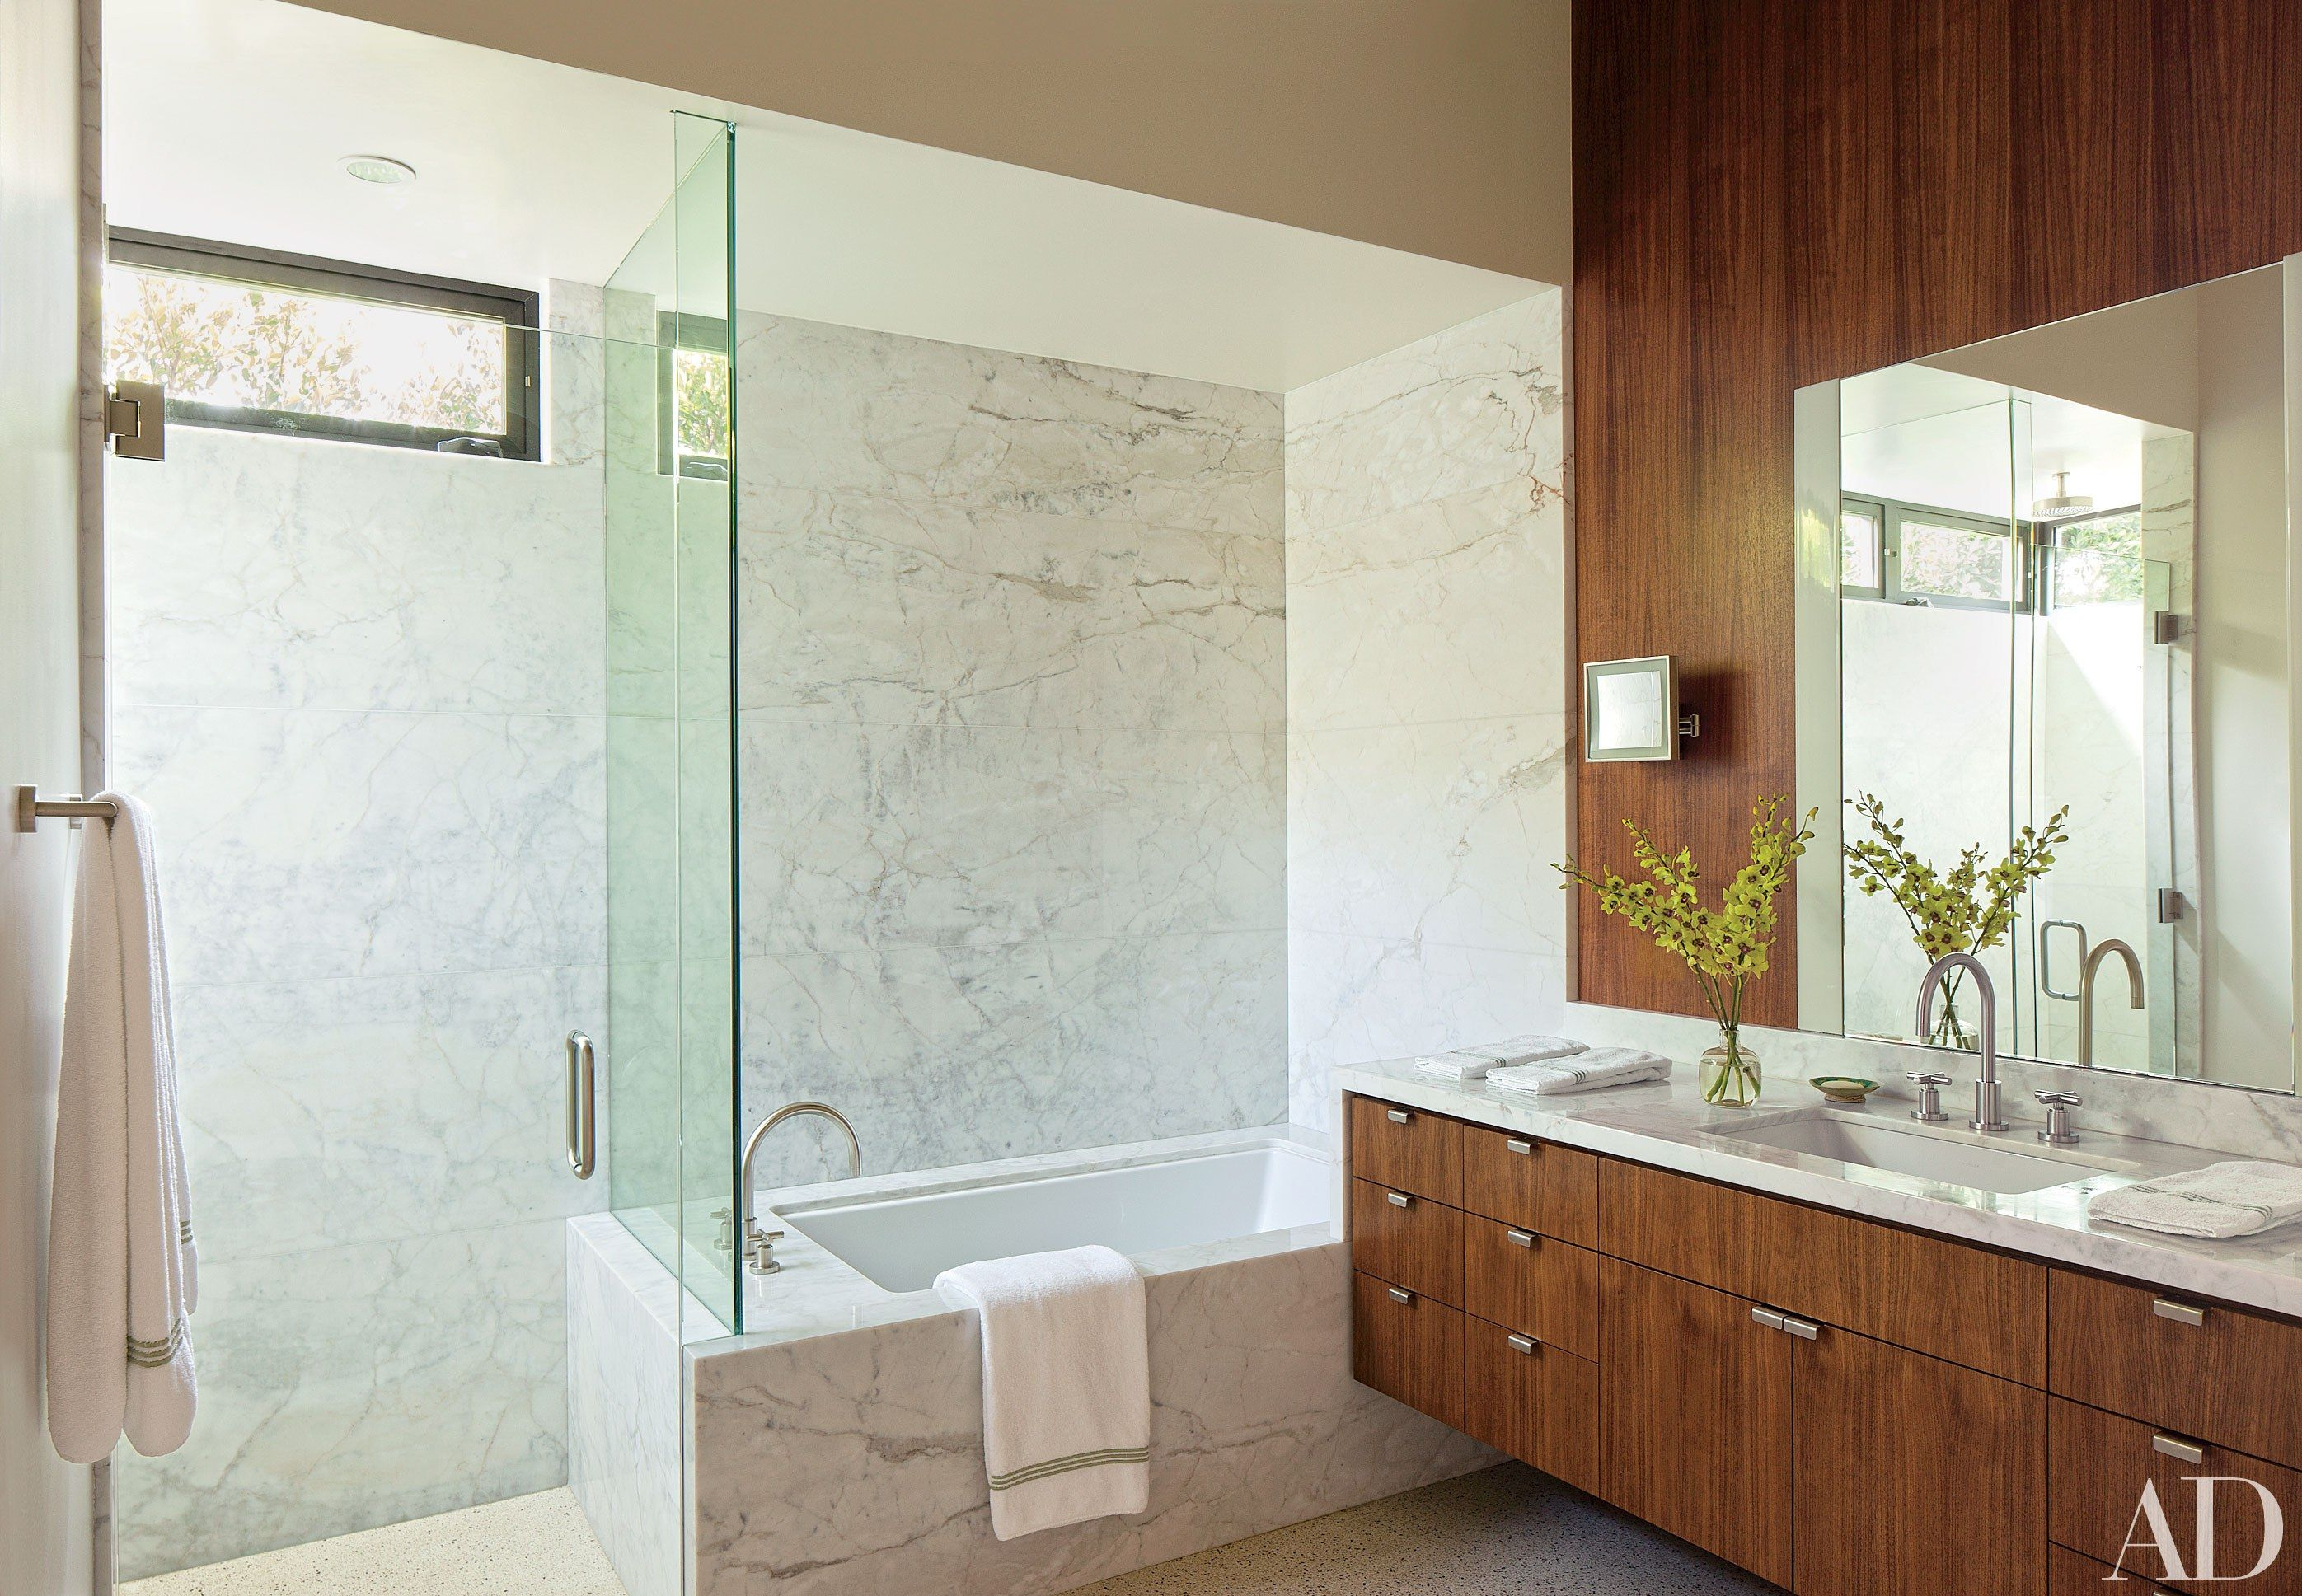 22 Baths Swathed In Graphic Marble Beverly Hills Houses